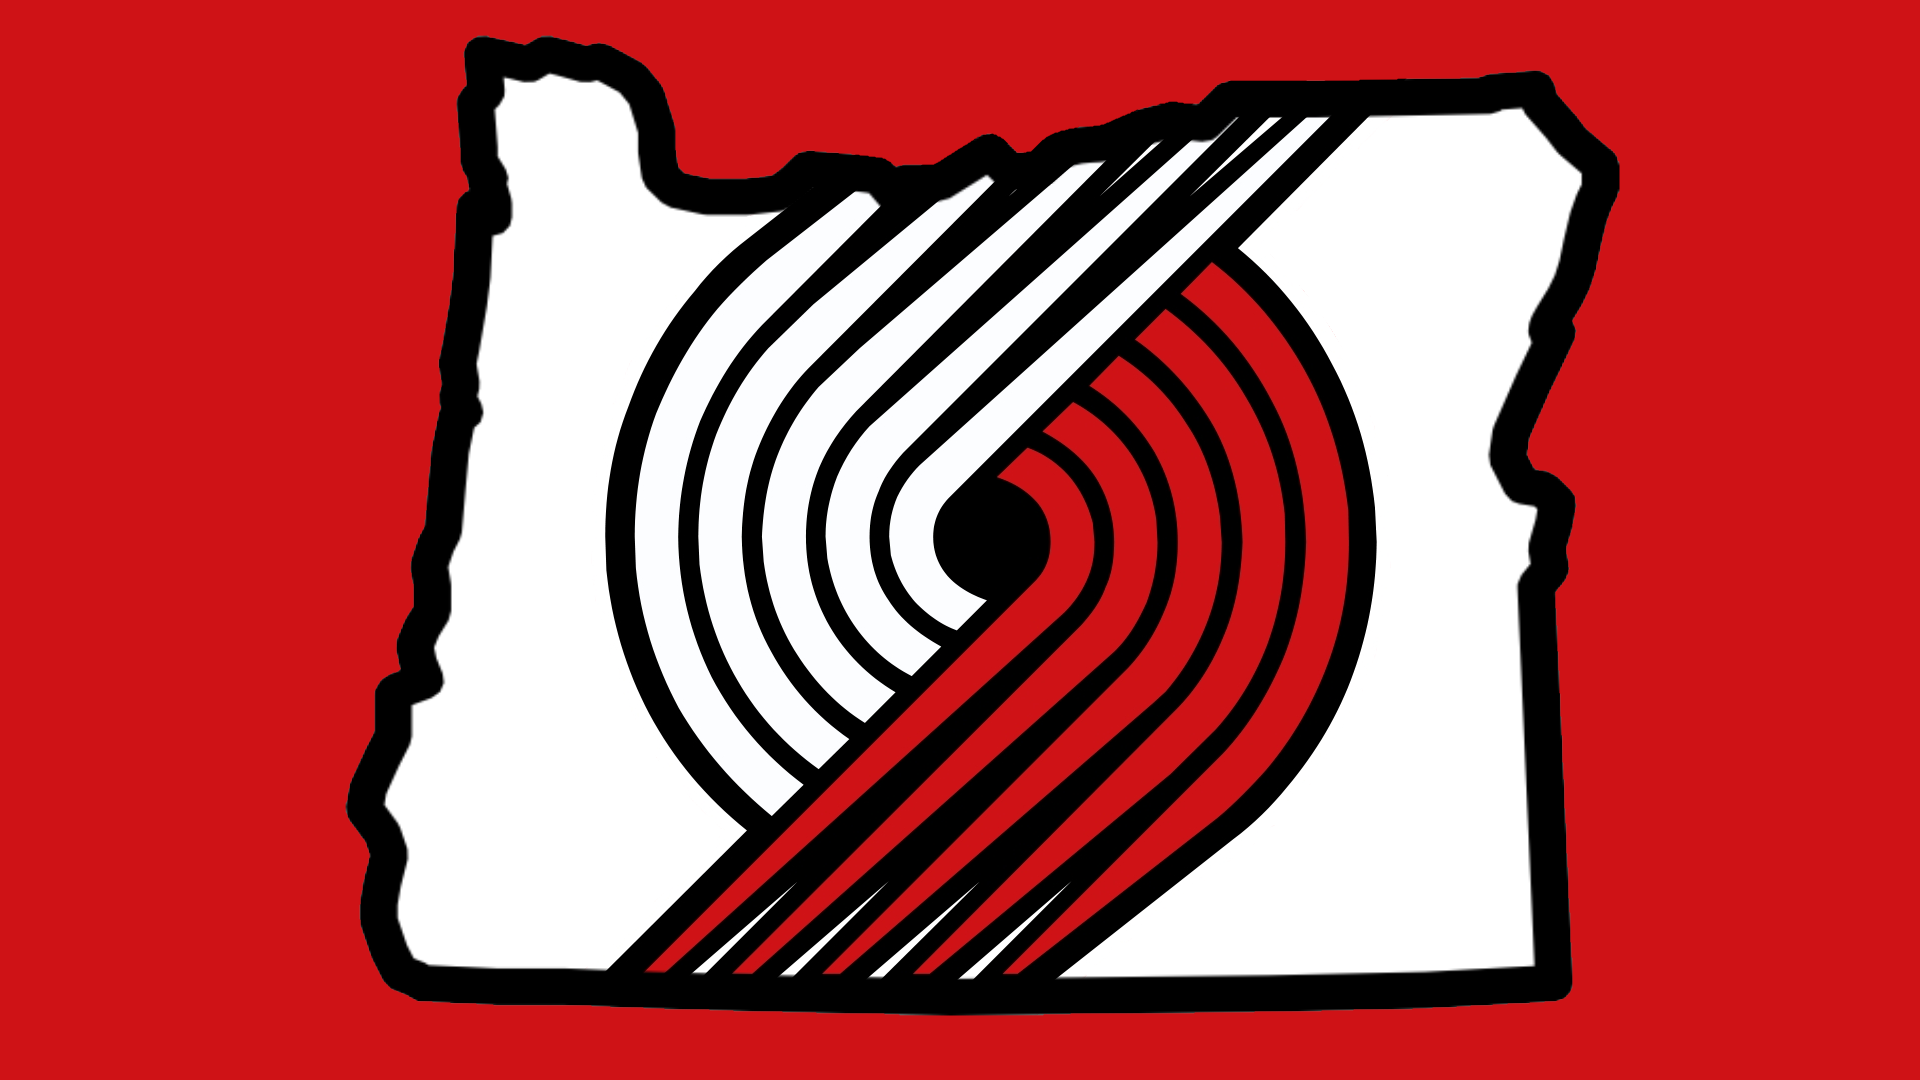 newest ea3c5 f6fbc Portland Trail Blazers Logo Wallpaper   In preparation for the upcoming NBA  season I created a wallpaper to .